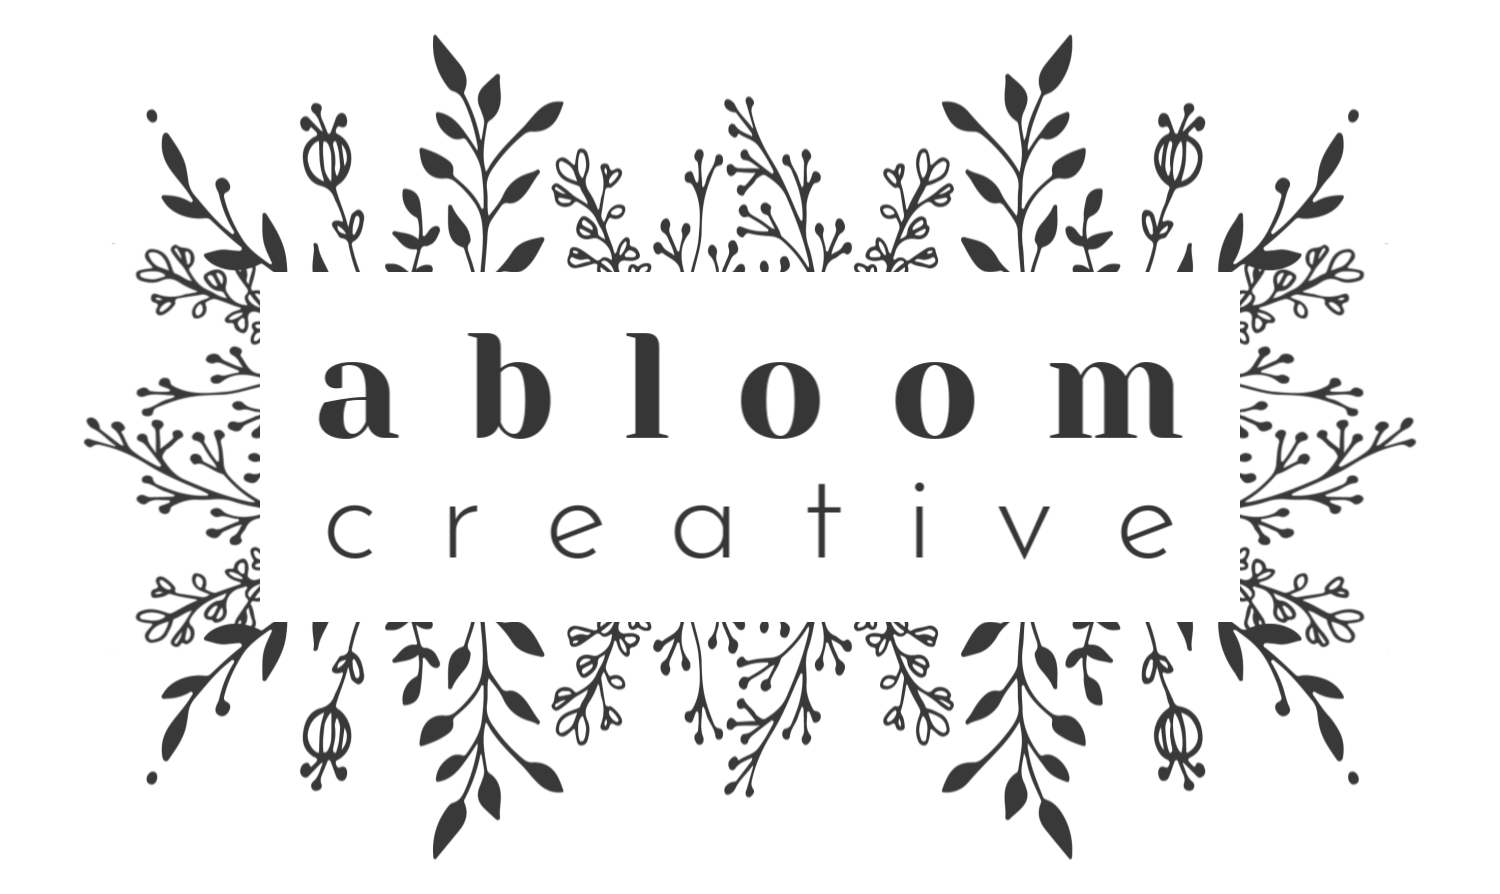 Abloom Creative